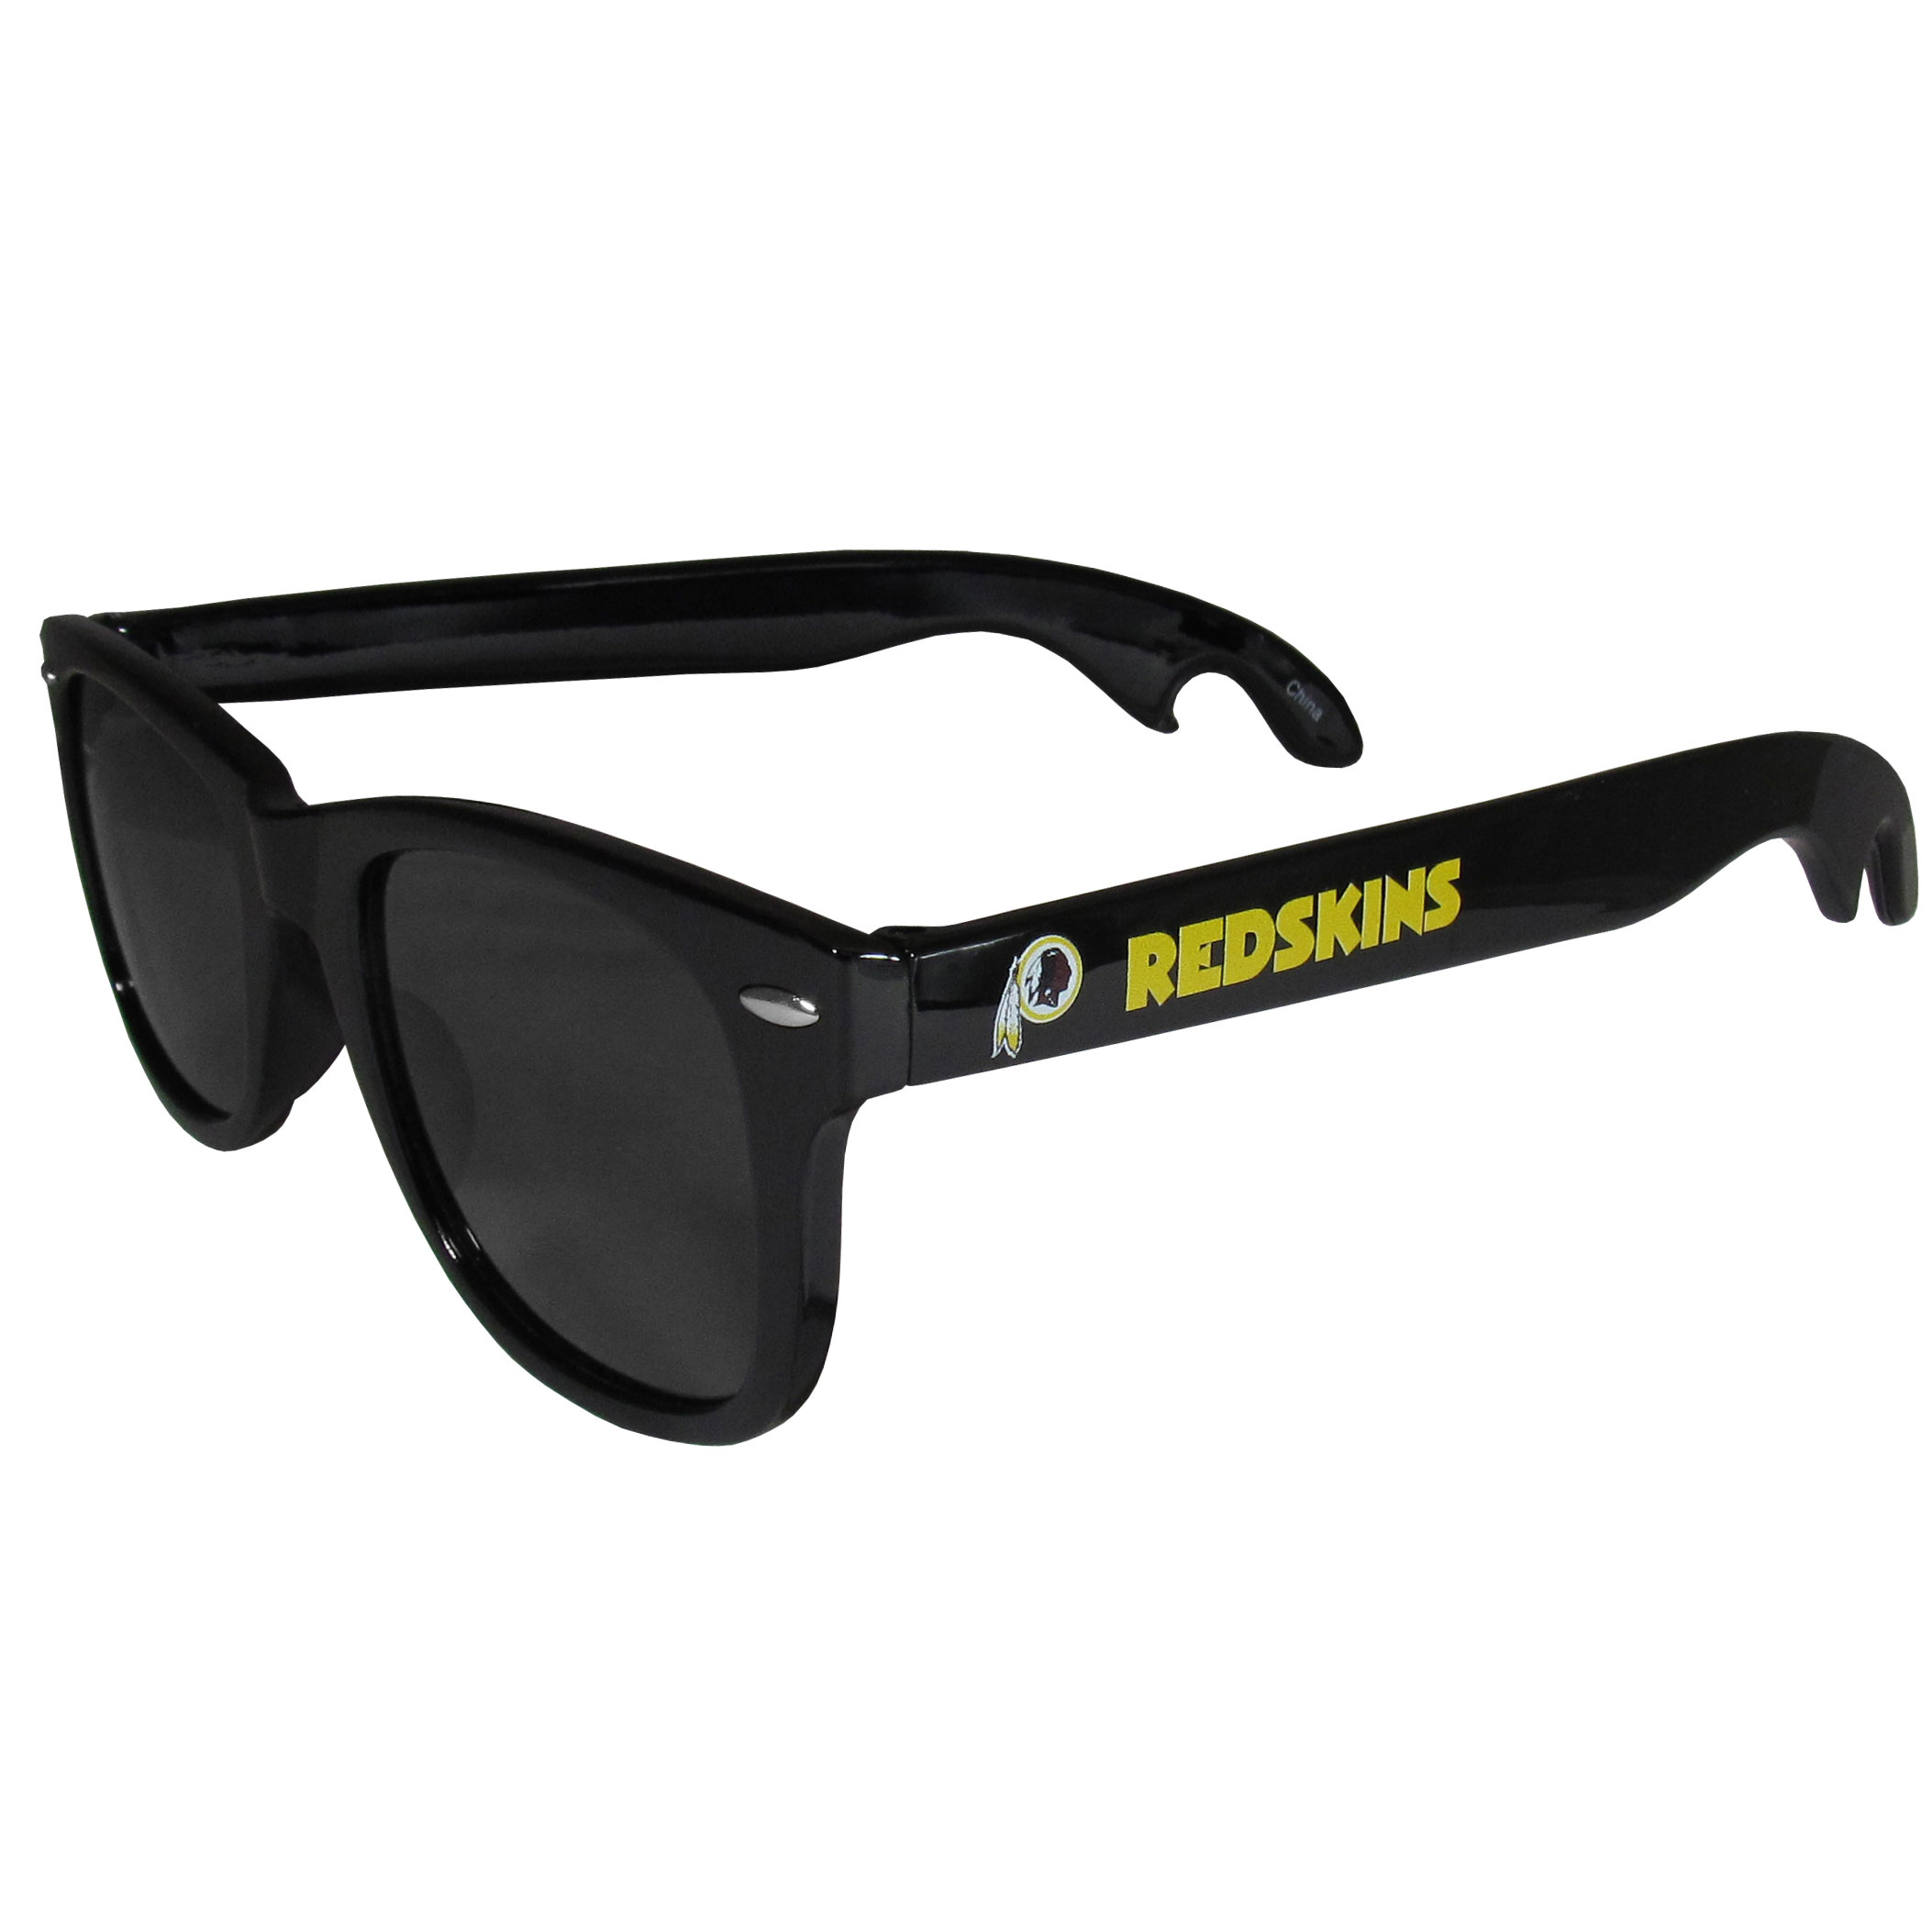 Washington Redskins Beachfarer Bottle Opener Sunglasses - Seriously, these sunglasses open bottles! Keep the party going with these amazing Washington Redskins bottle opener sunglasses. The stylish retro frames feature team designs on the arms and functional bottle openers on the end of the arms. Whether you are at the beach or having a backyard BBQ on game day, these shades will keep your eyes protected with 100% UVA/UVB protection and keep you hydrated with the handy bottle opener arms.